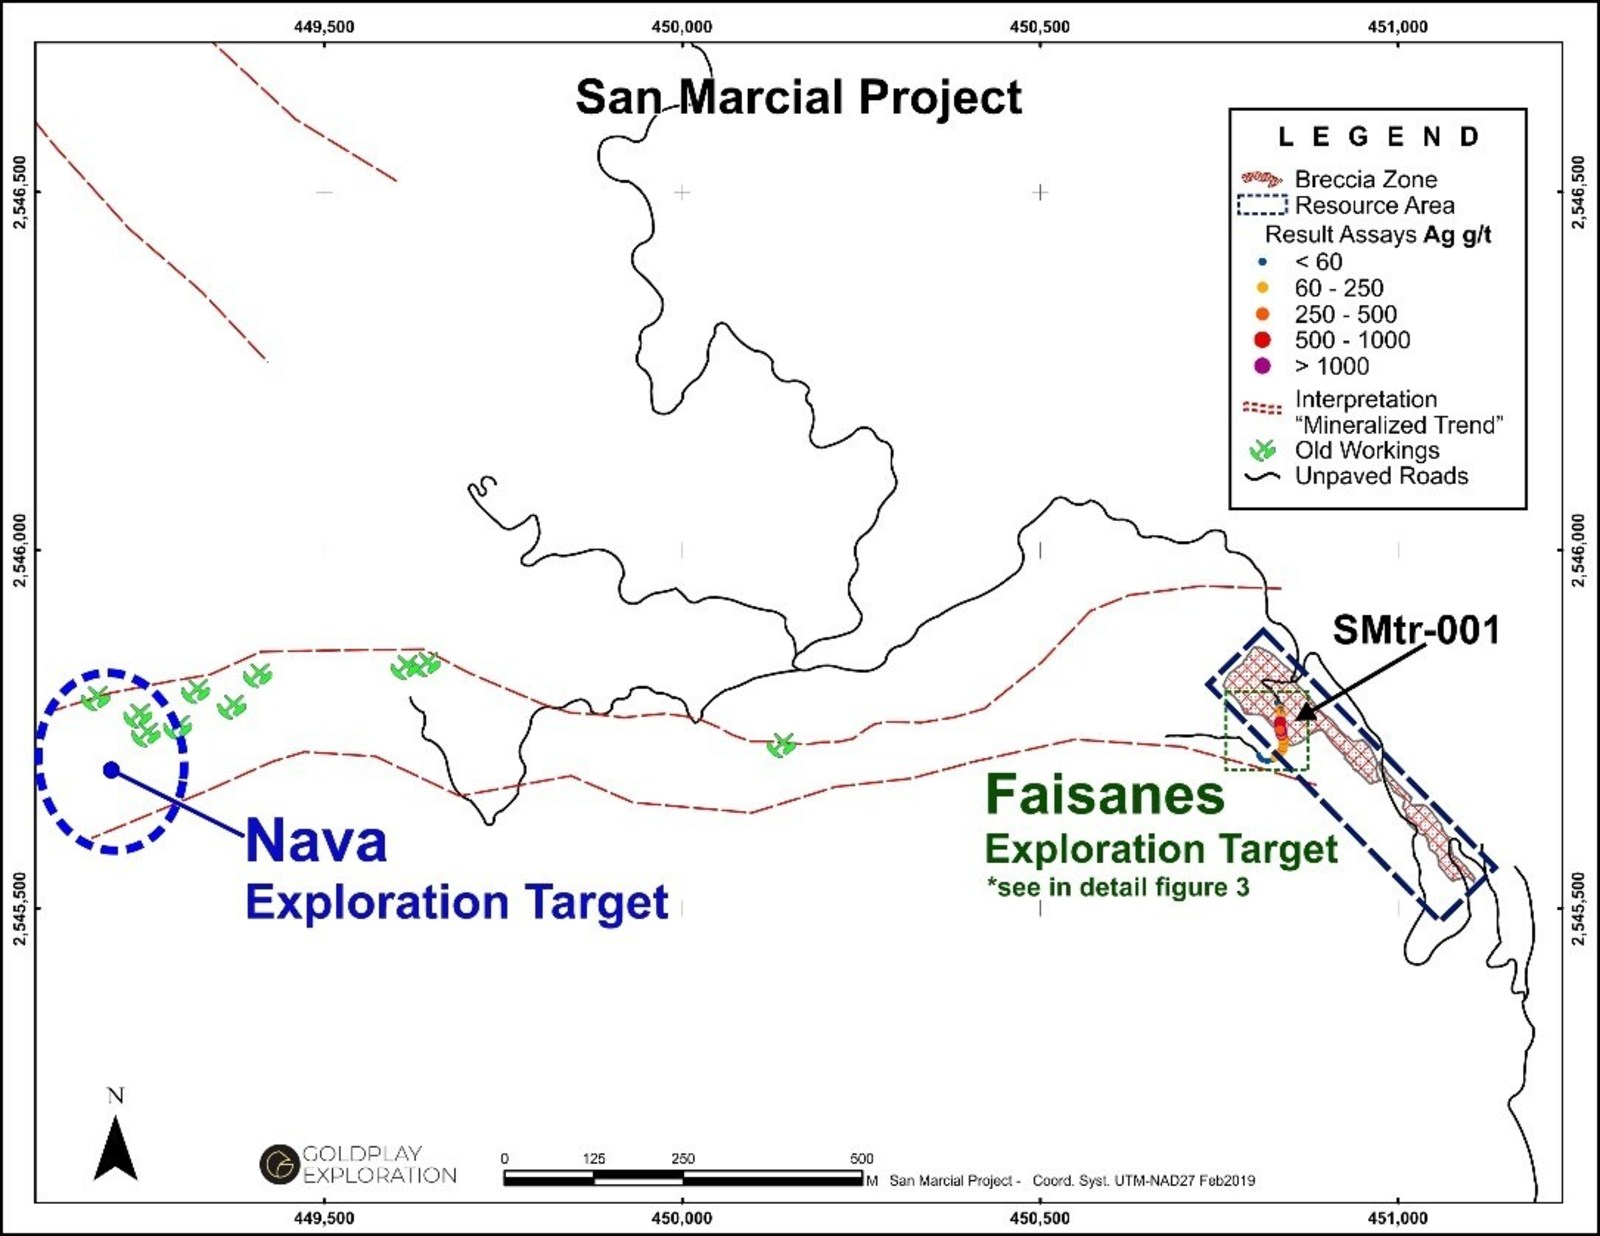 Figure 2 San Marcial - Location of the Nava-Faisanes Targets and Trench SMtr-001